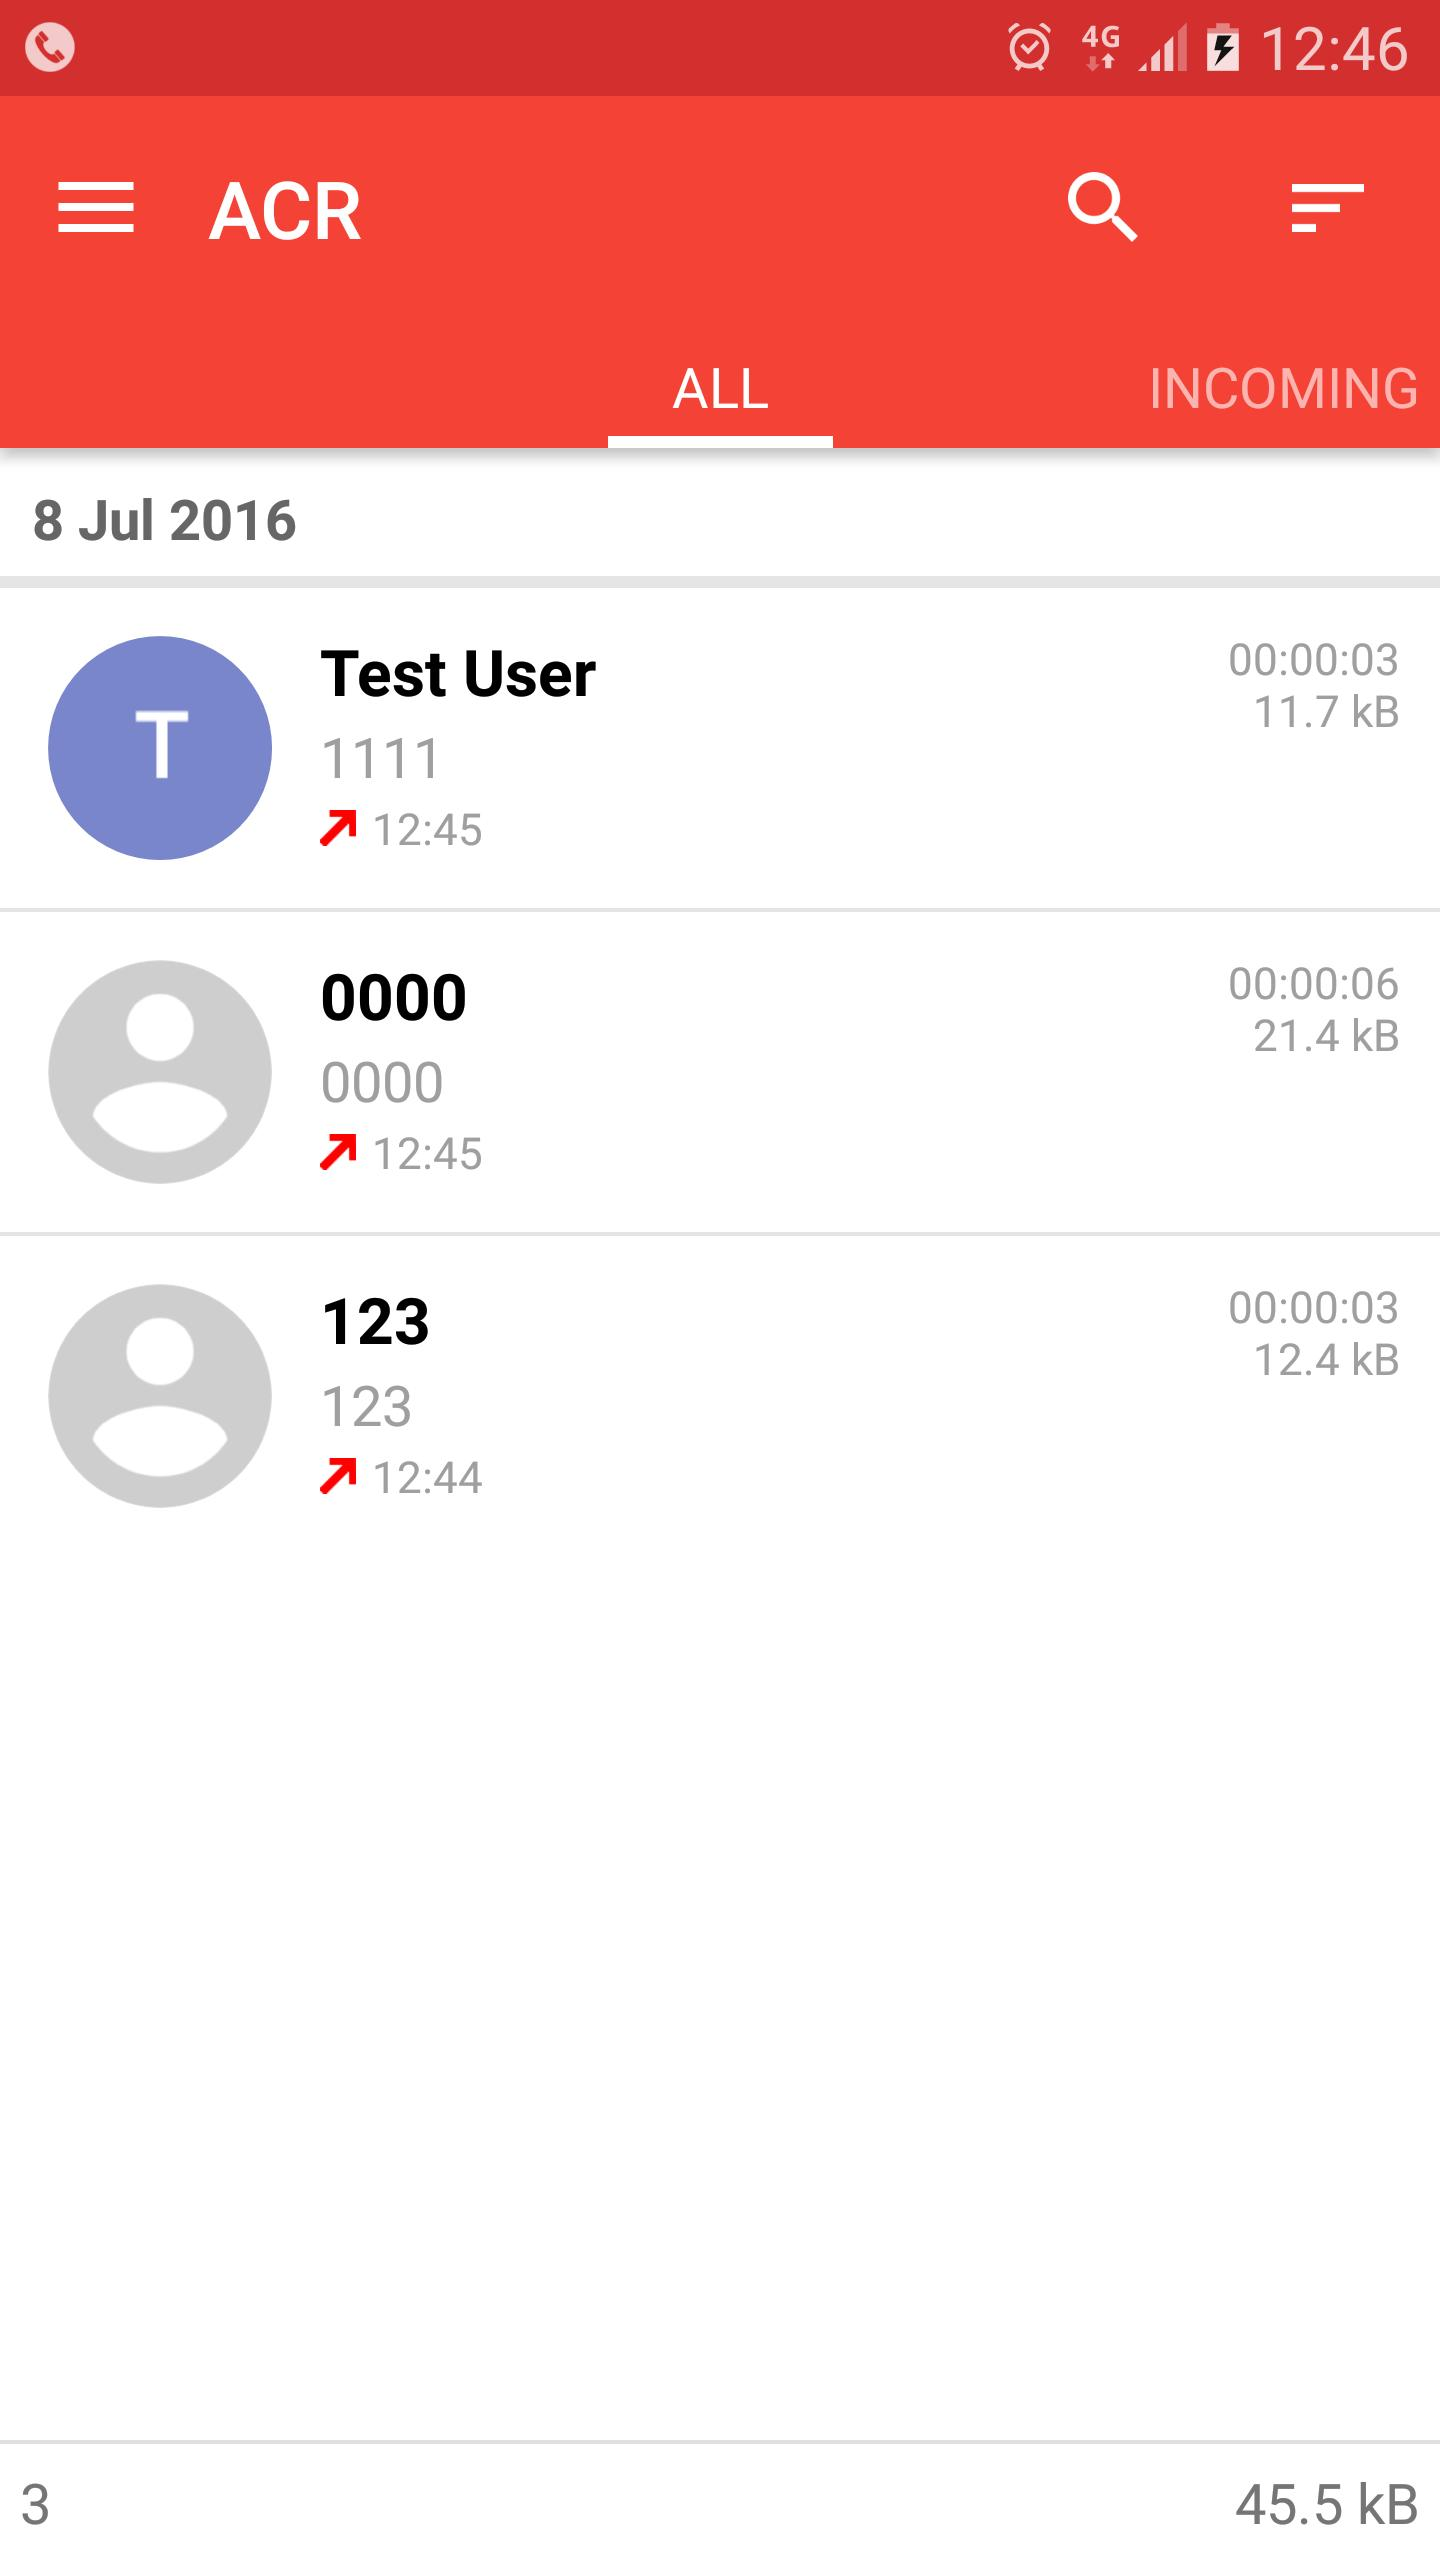 Call Recorder - ACR for Android - APK Download